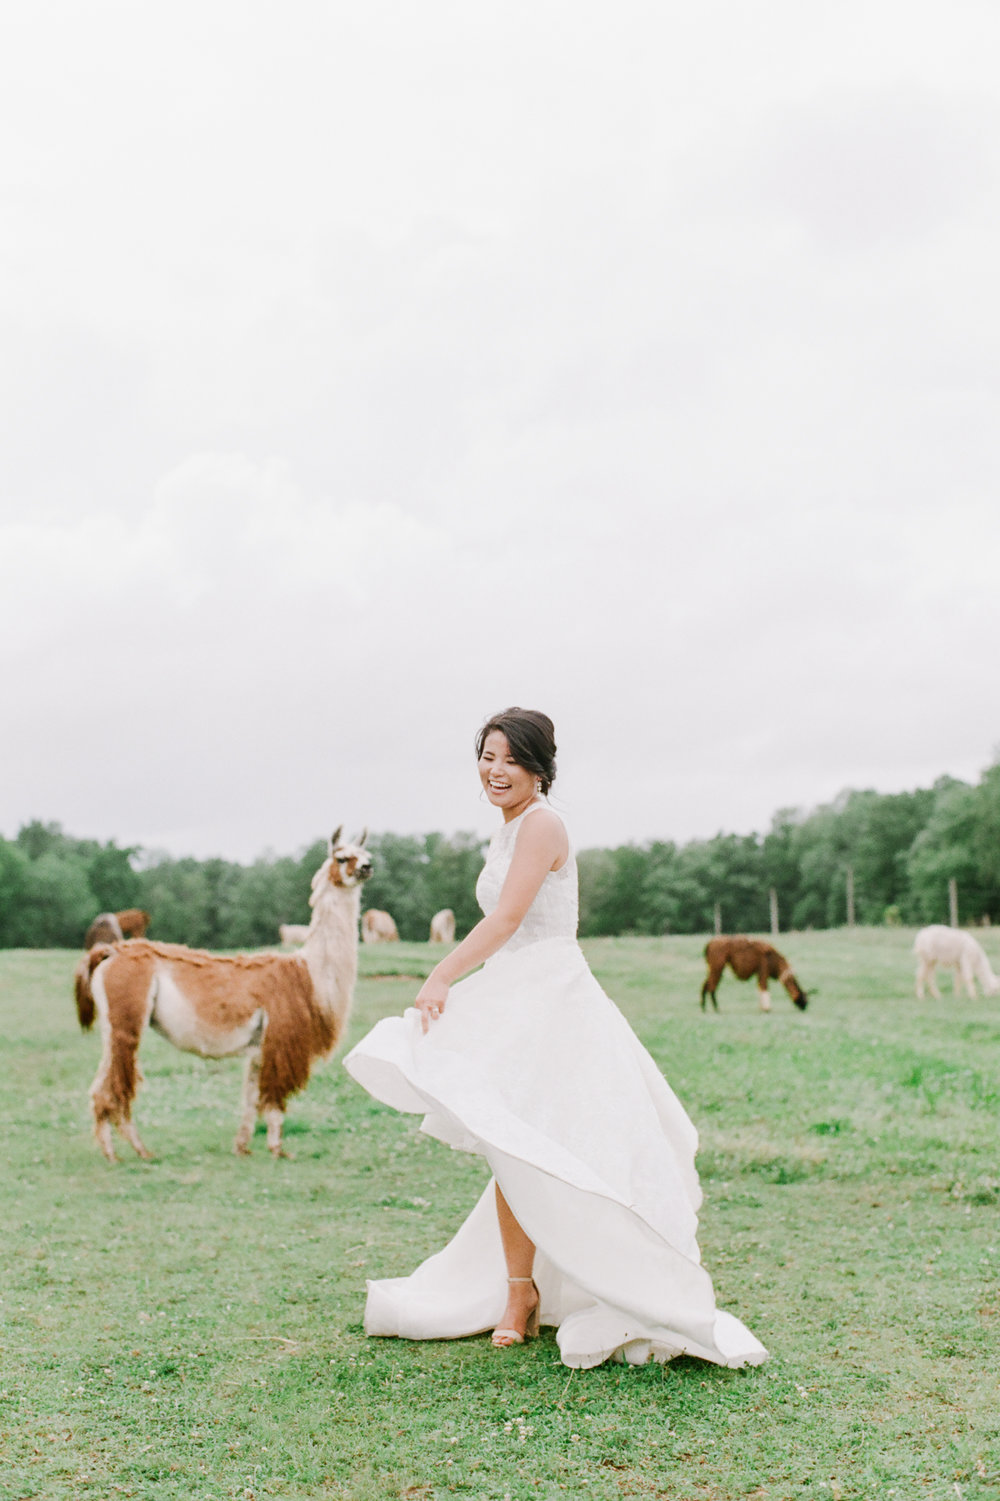 nj_alpaca-farm_wedding_inspiration-78.jpg